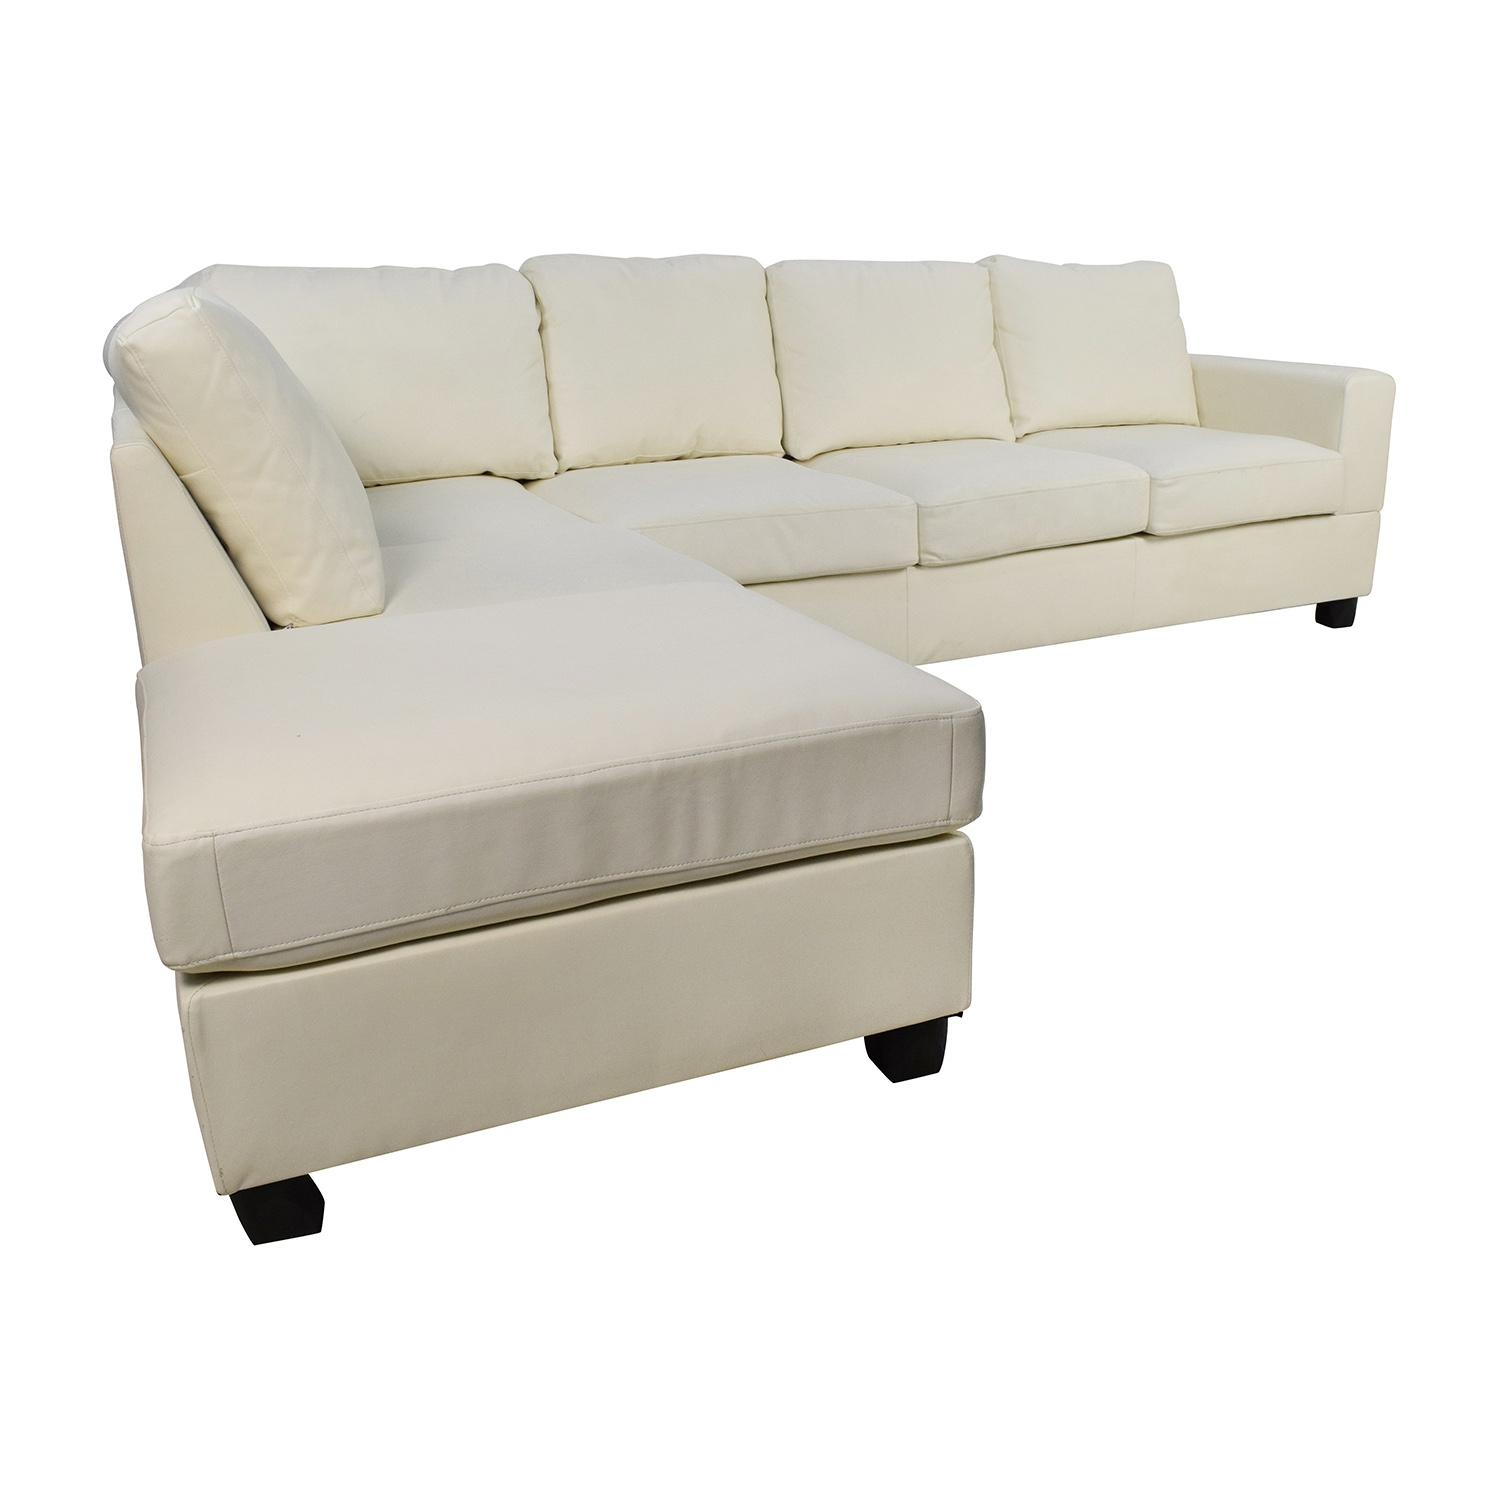 10 Best Collection Of Off White Leather Sofas: 20 Best Collection Of Used Sectionals